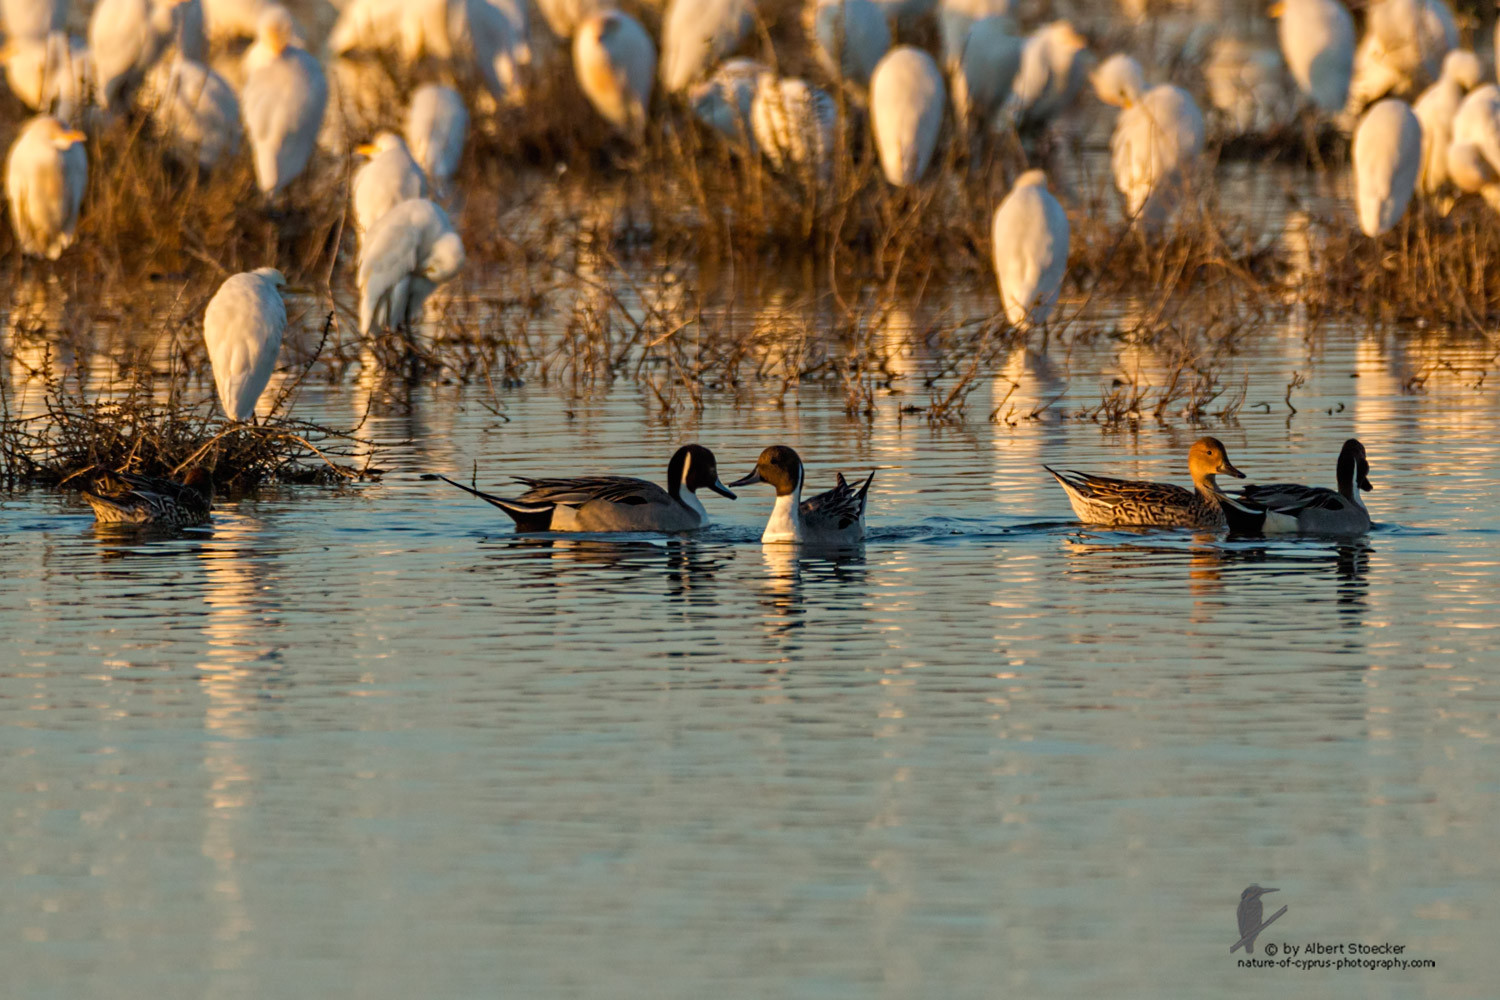 Anas acuta - Northern Pintail - Spießente, Cyprus, Oroklini Lake, January 2016